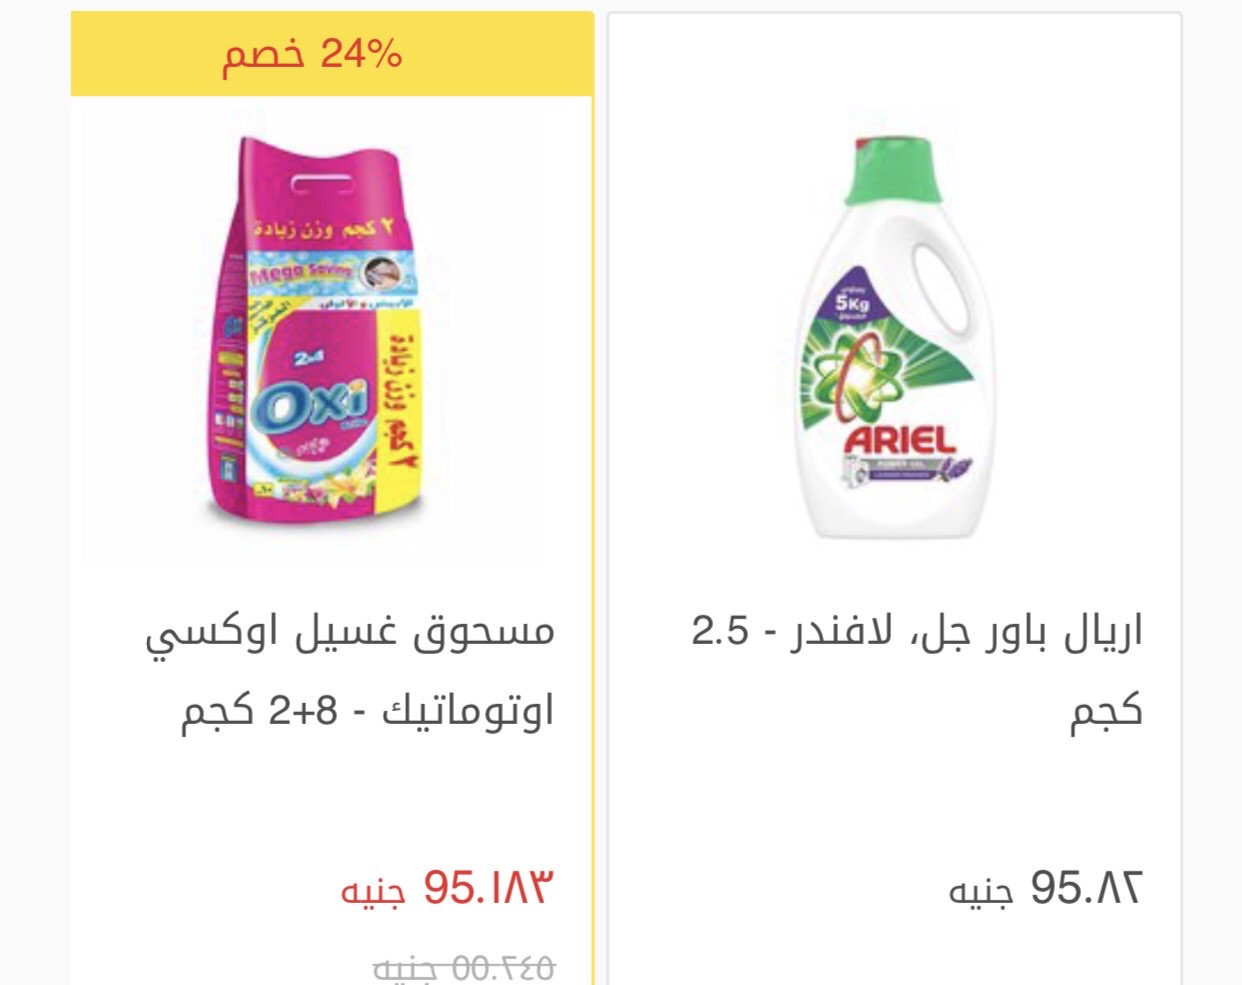 New Carrefour Egypt introduces 50 EGP discount codes on your first order 10